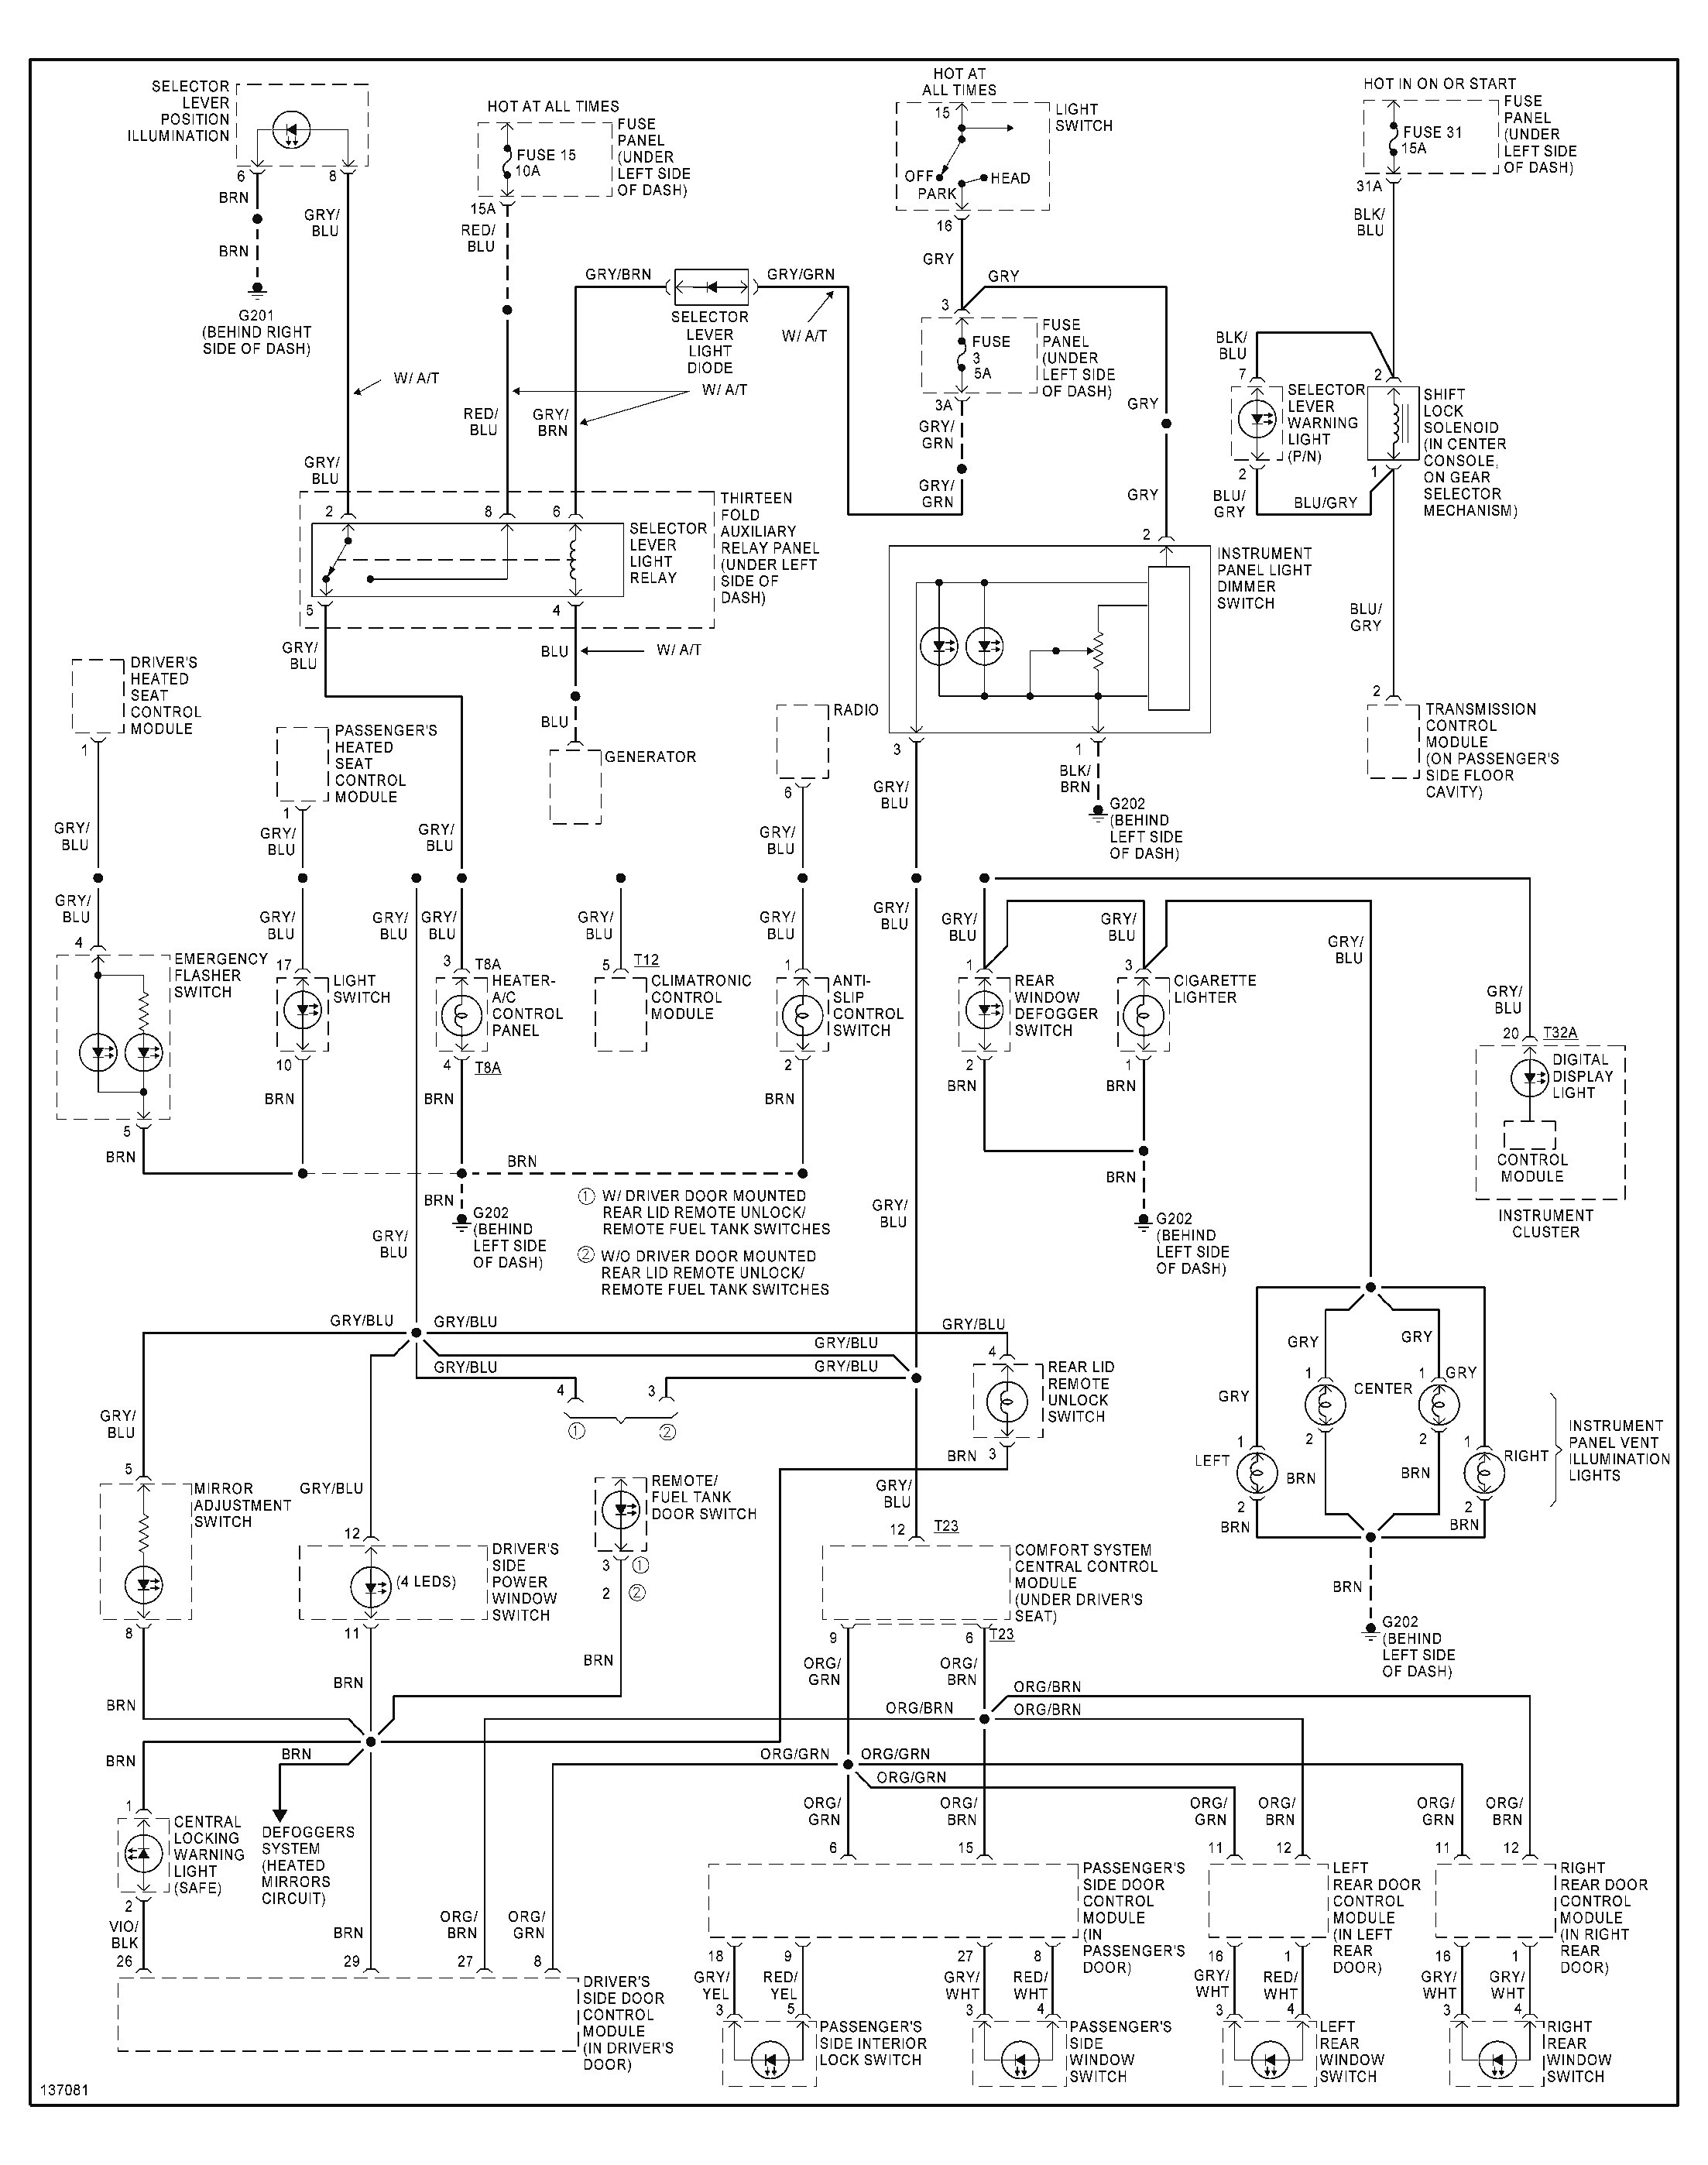 Sony Cdx Gt260mp Wiring Diagram Full